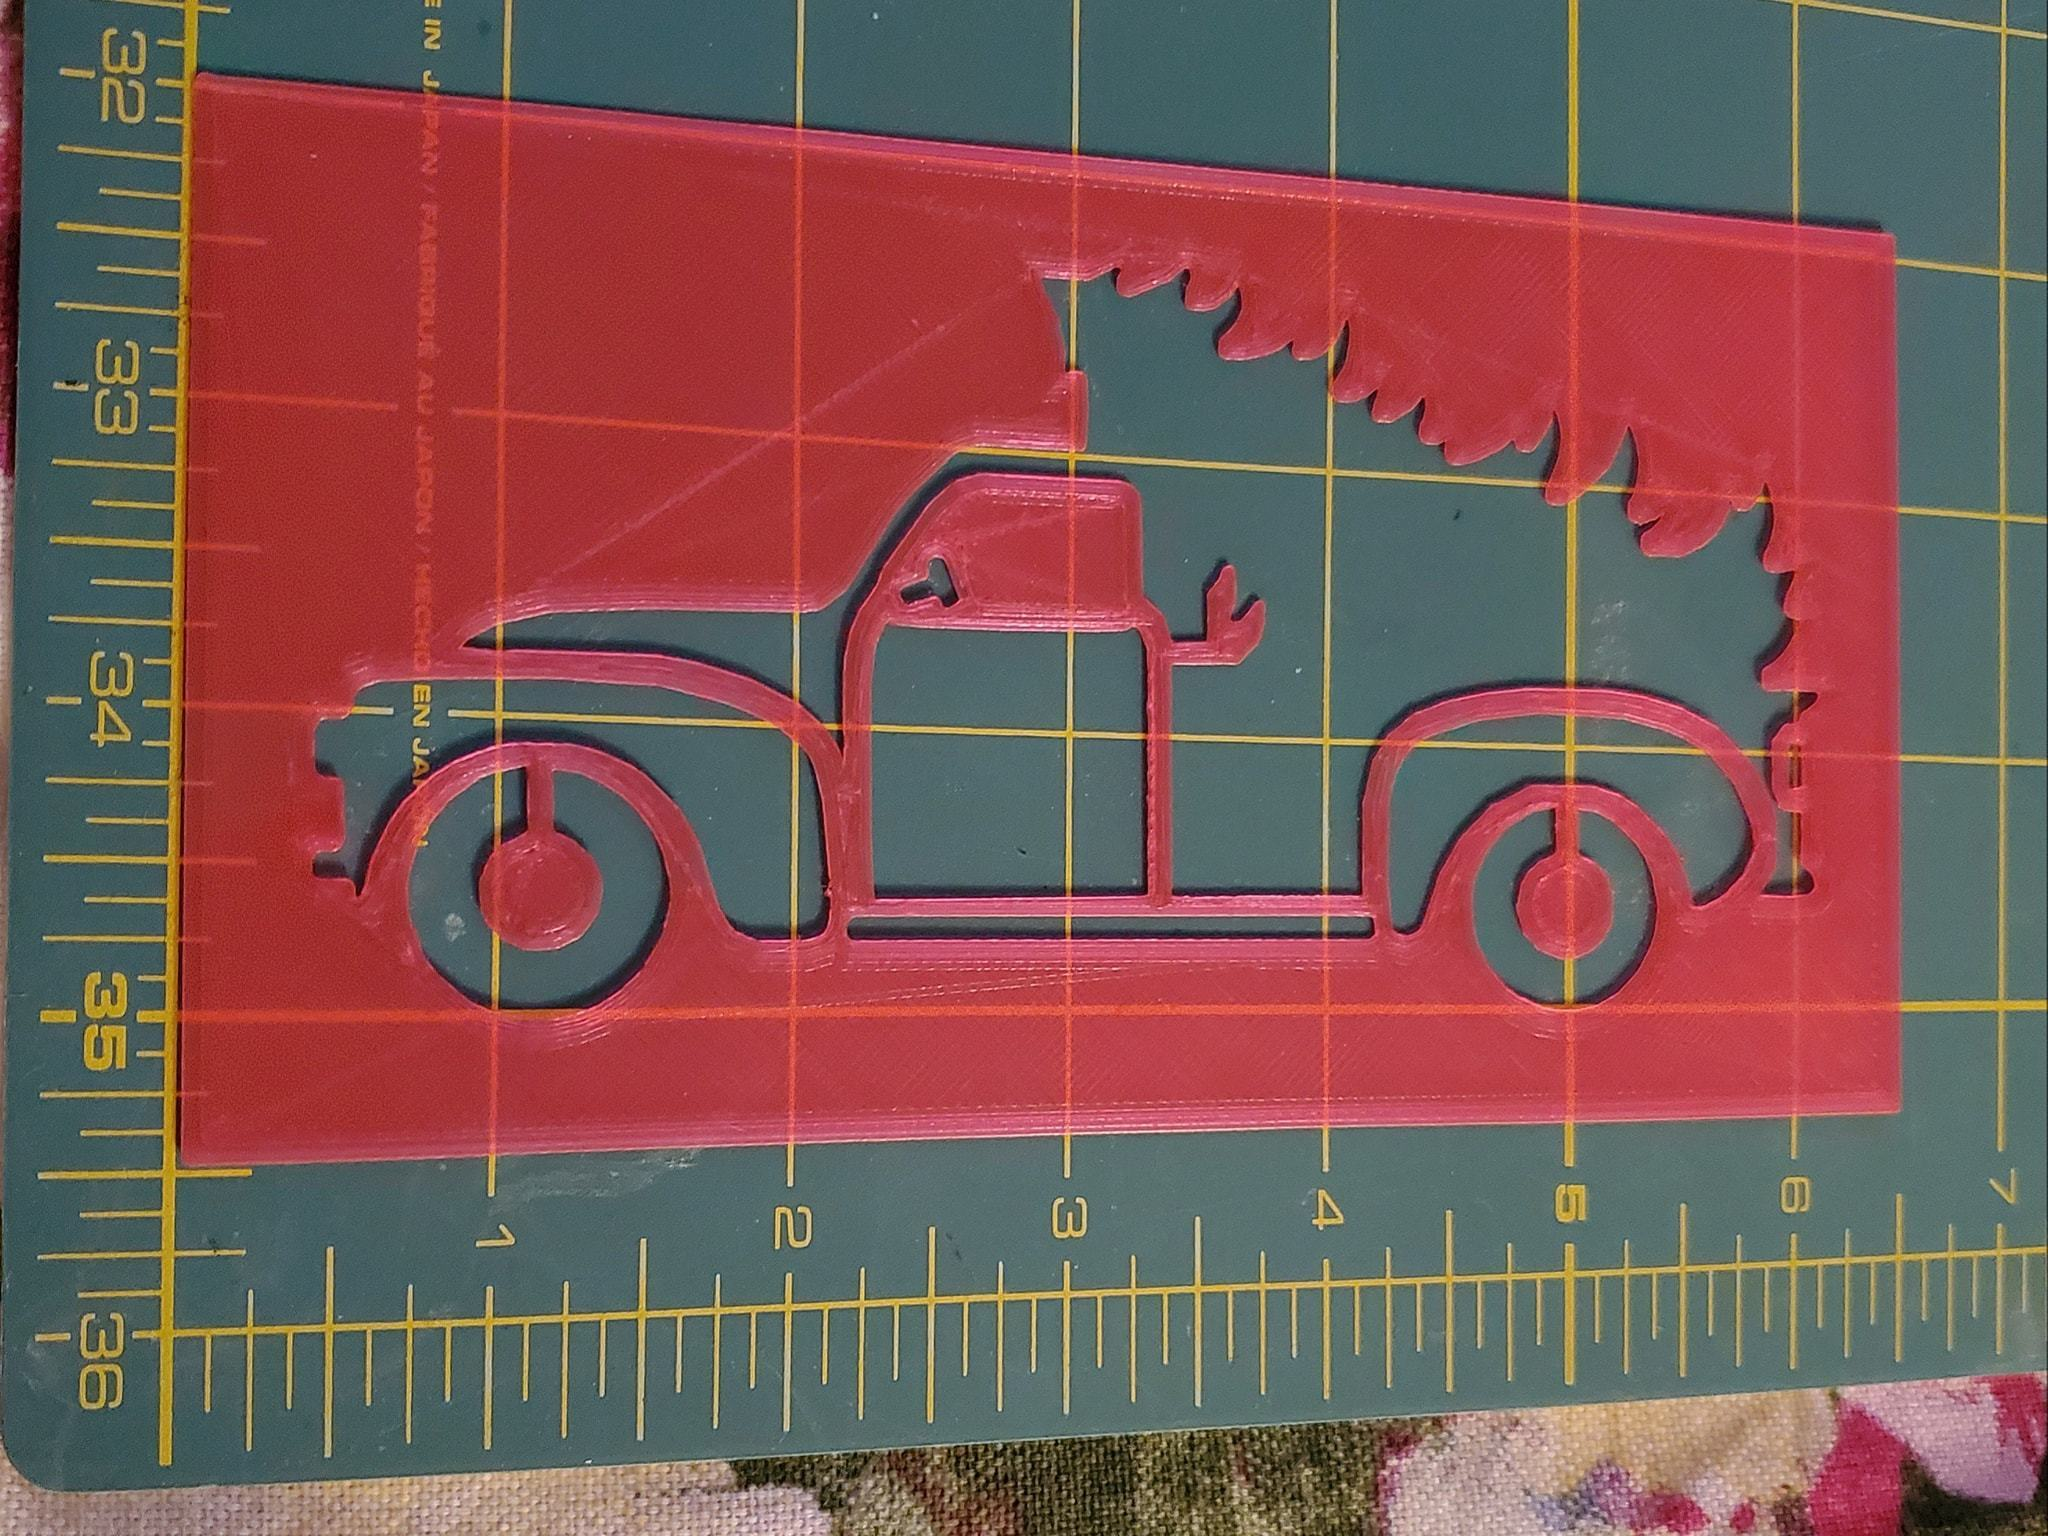 118980307_3382747678617100_1606294910966976129_o.jpg Download STL file Christmas Farm Truck (from the side) Stencil 6 inch wide, 0.6 mm thick • 3D printer object, HostagePotatoChips